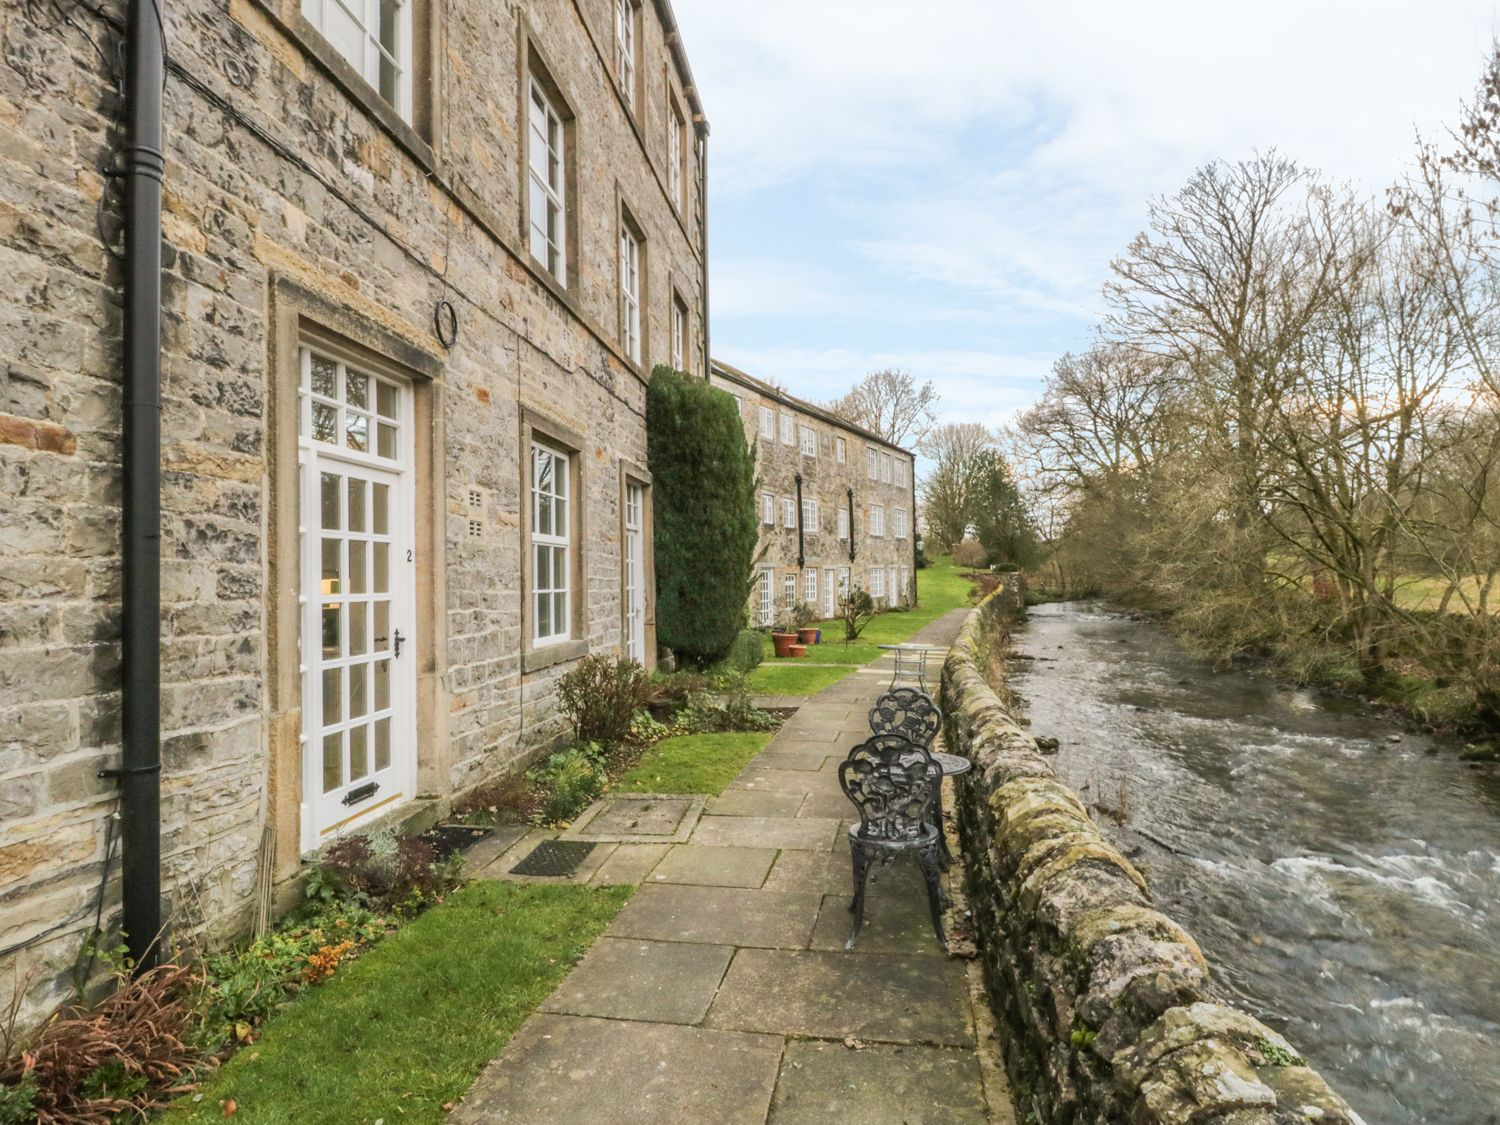 2 Riverside Walk - Yorkshire Dales - 965084 - photo 1